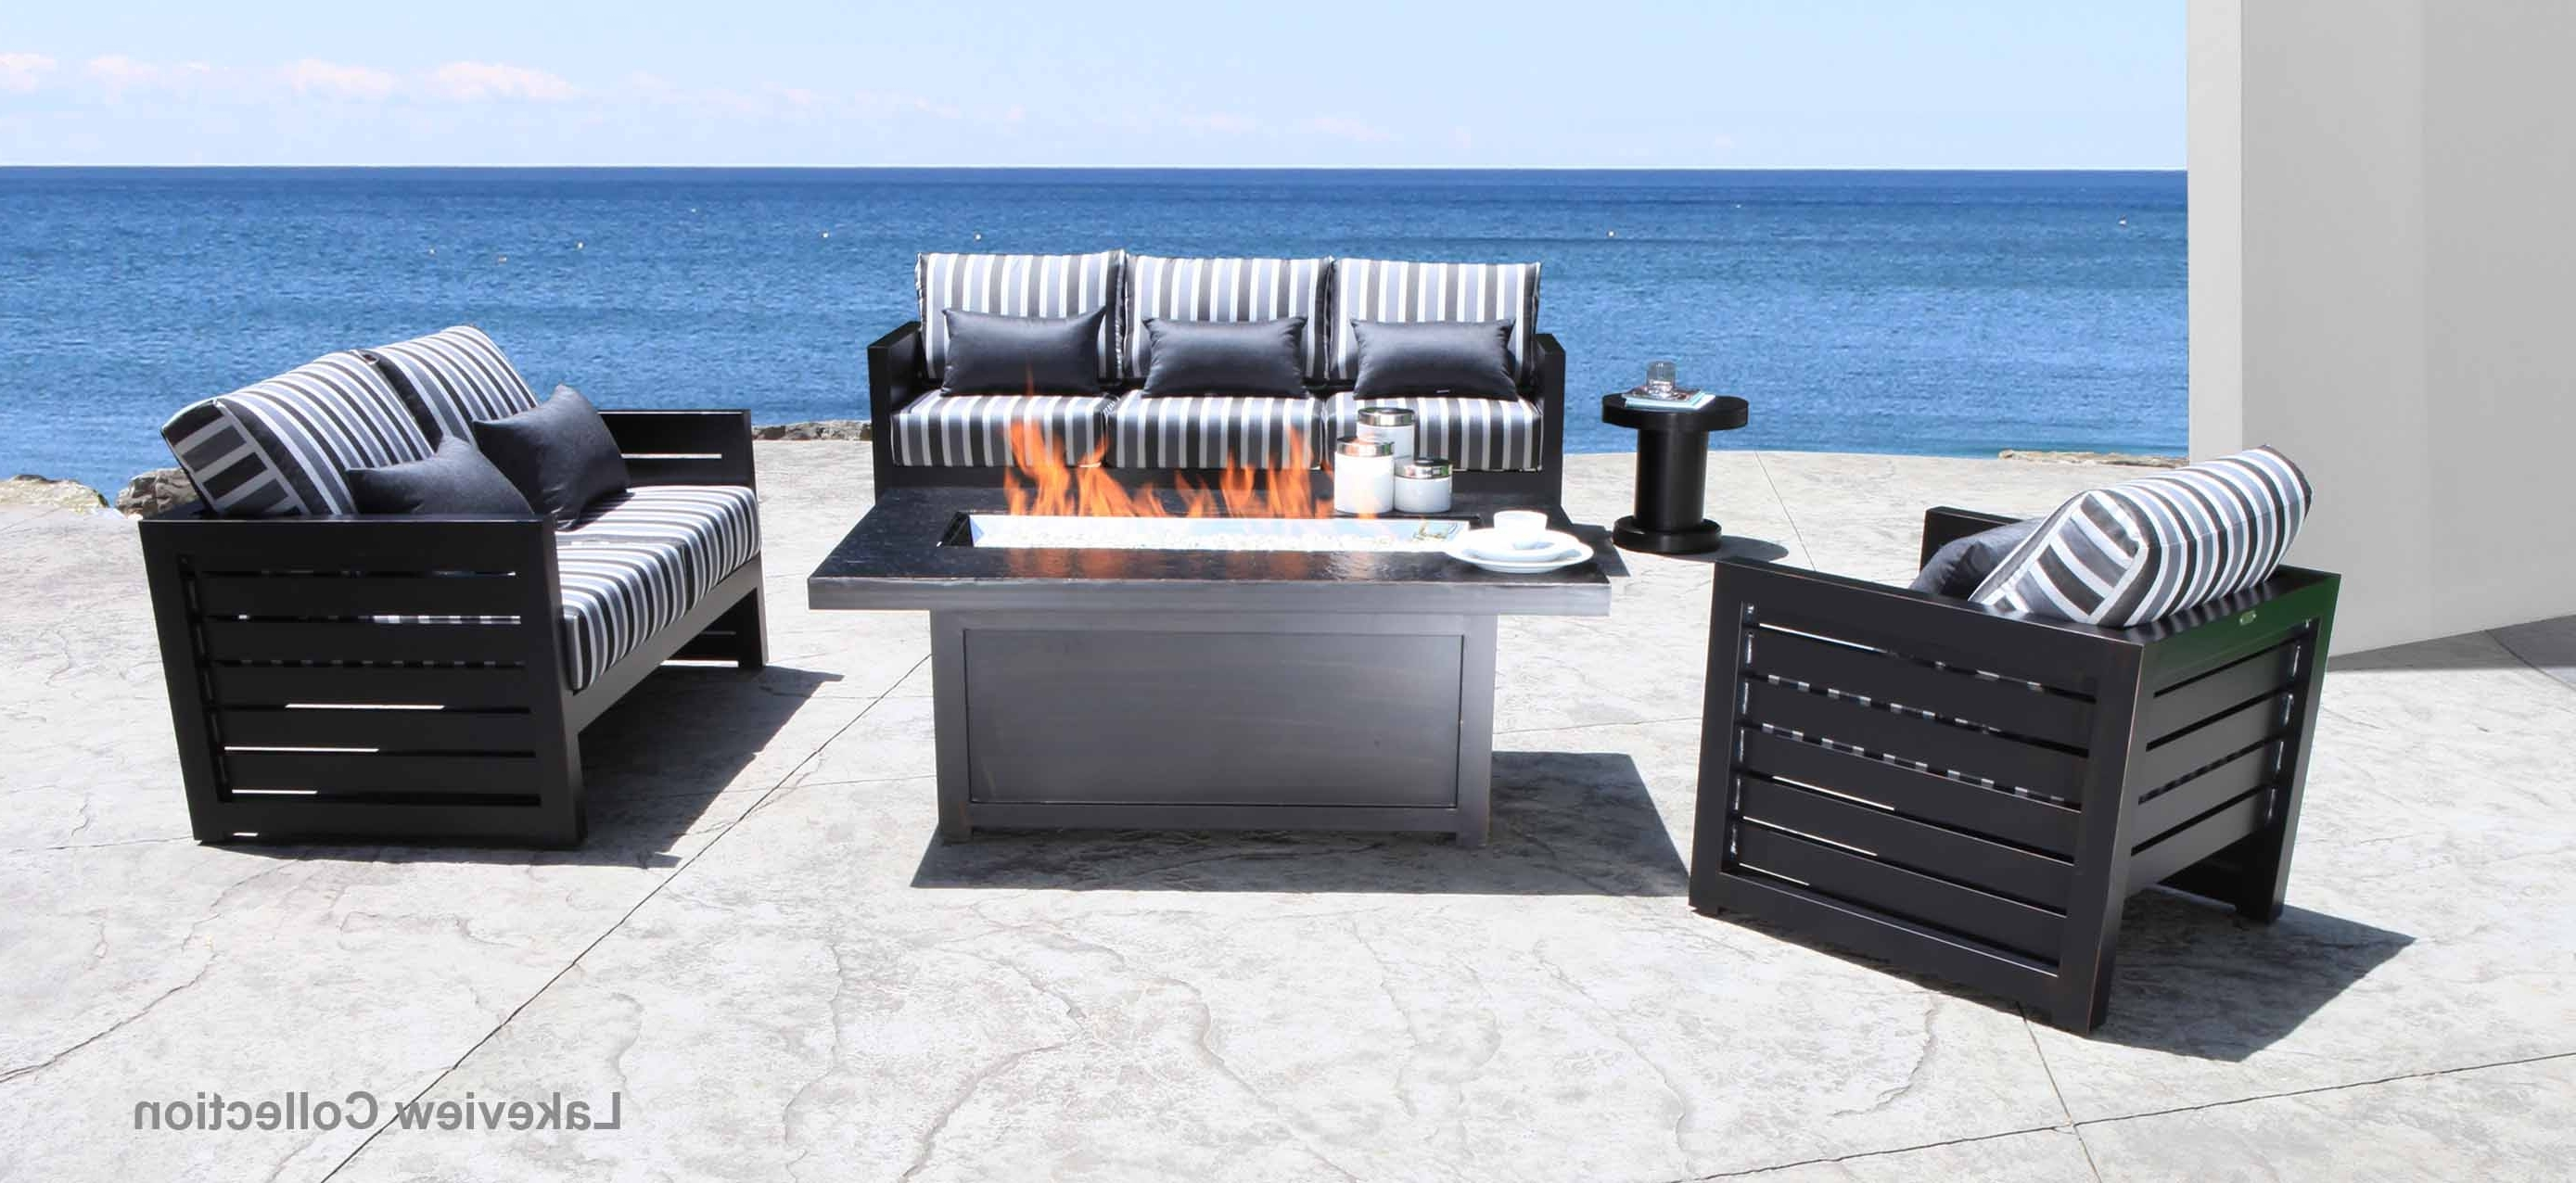 Shop Patio Furniture At Cabanacoast® Within Well Liked Edmonton Patio Conversation Sets (View 13 of 15)